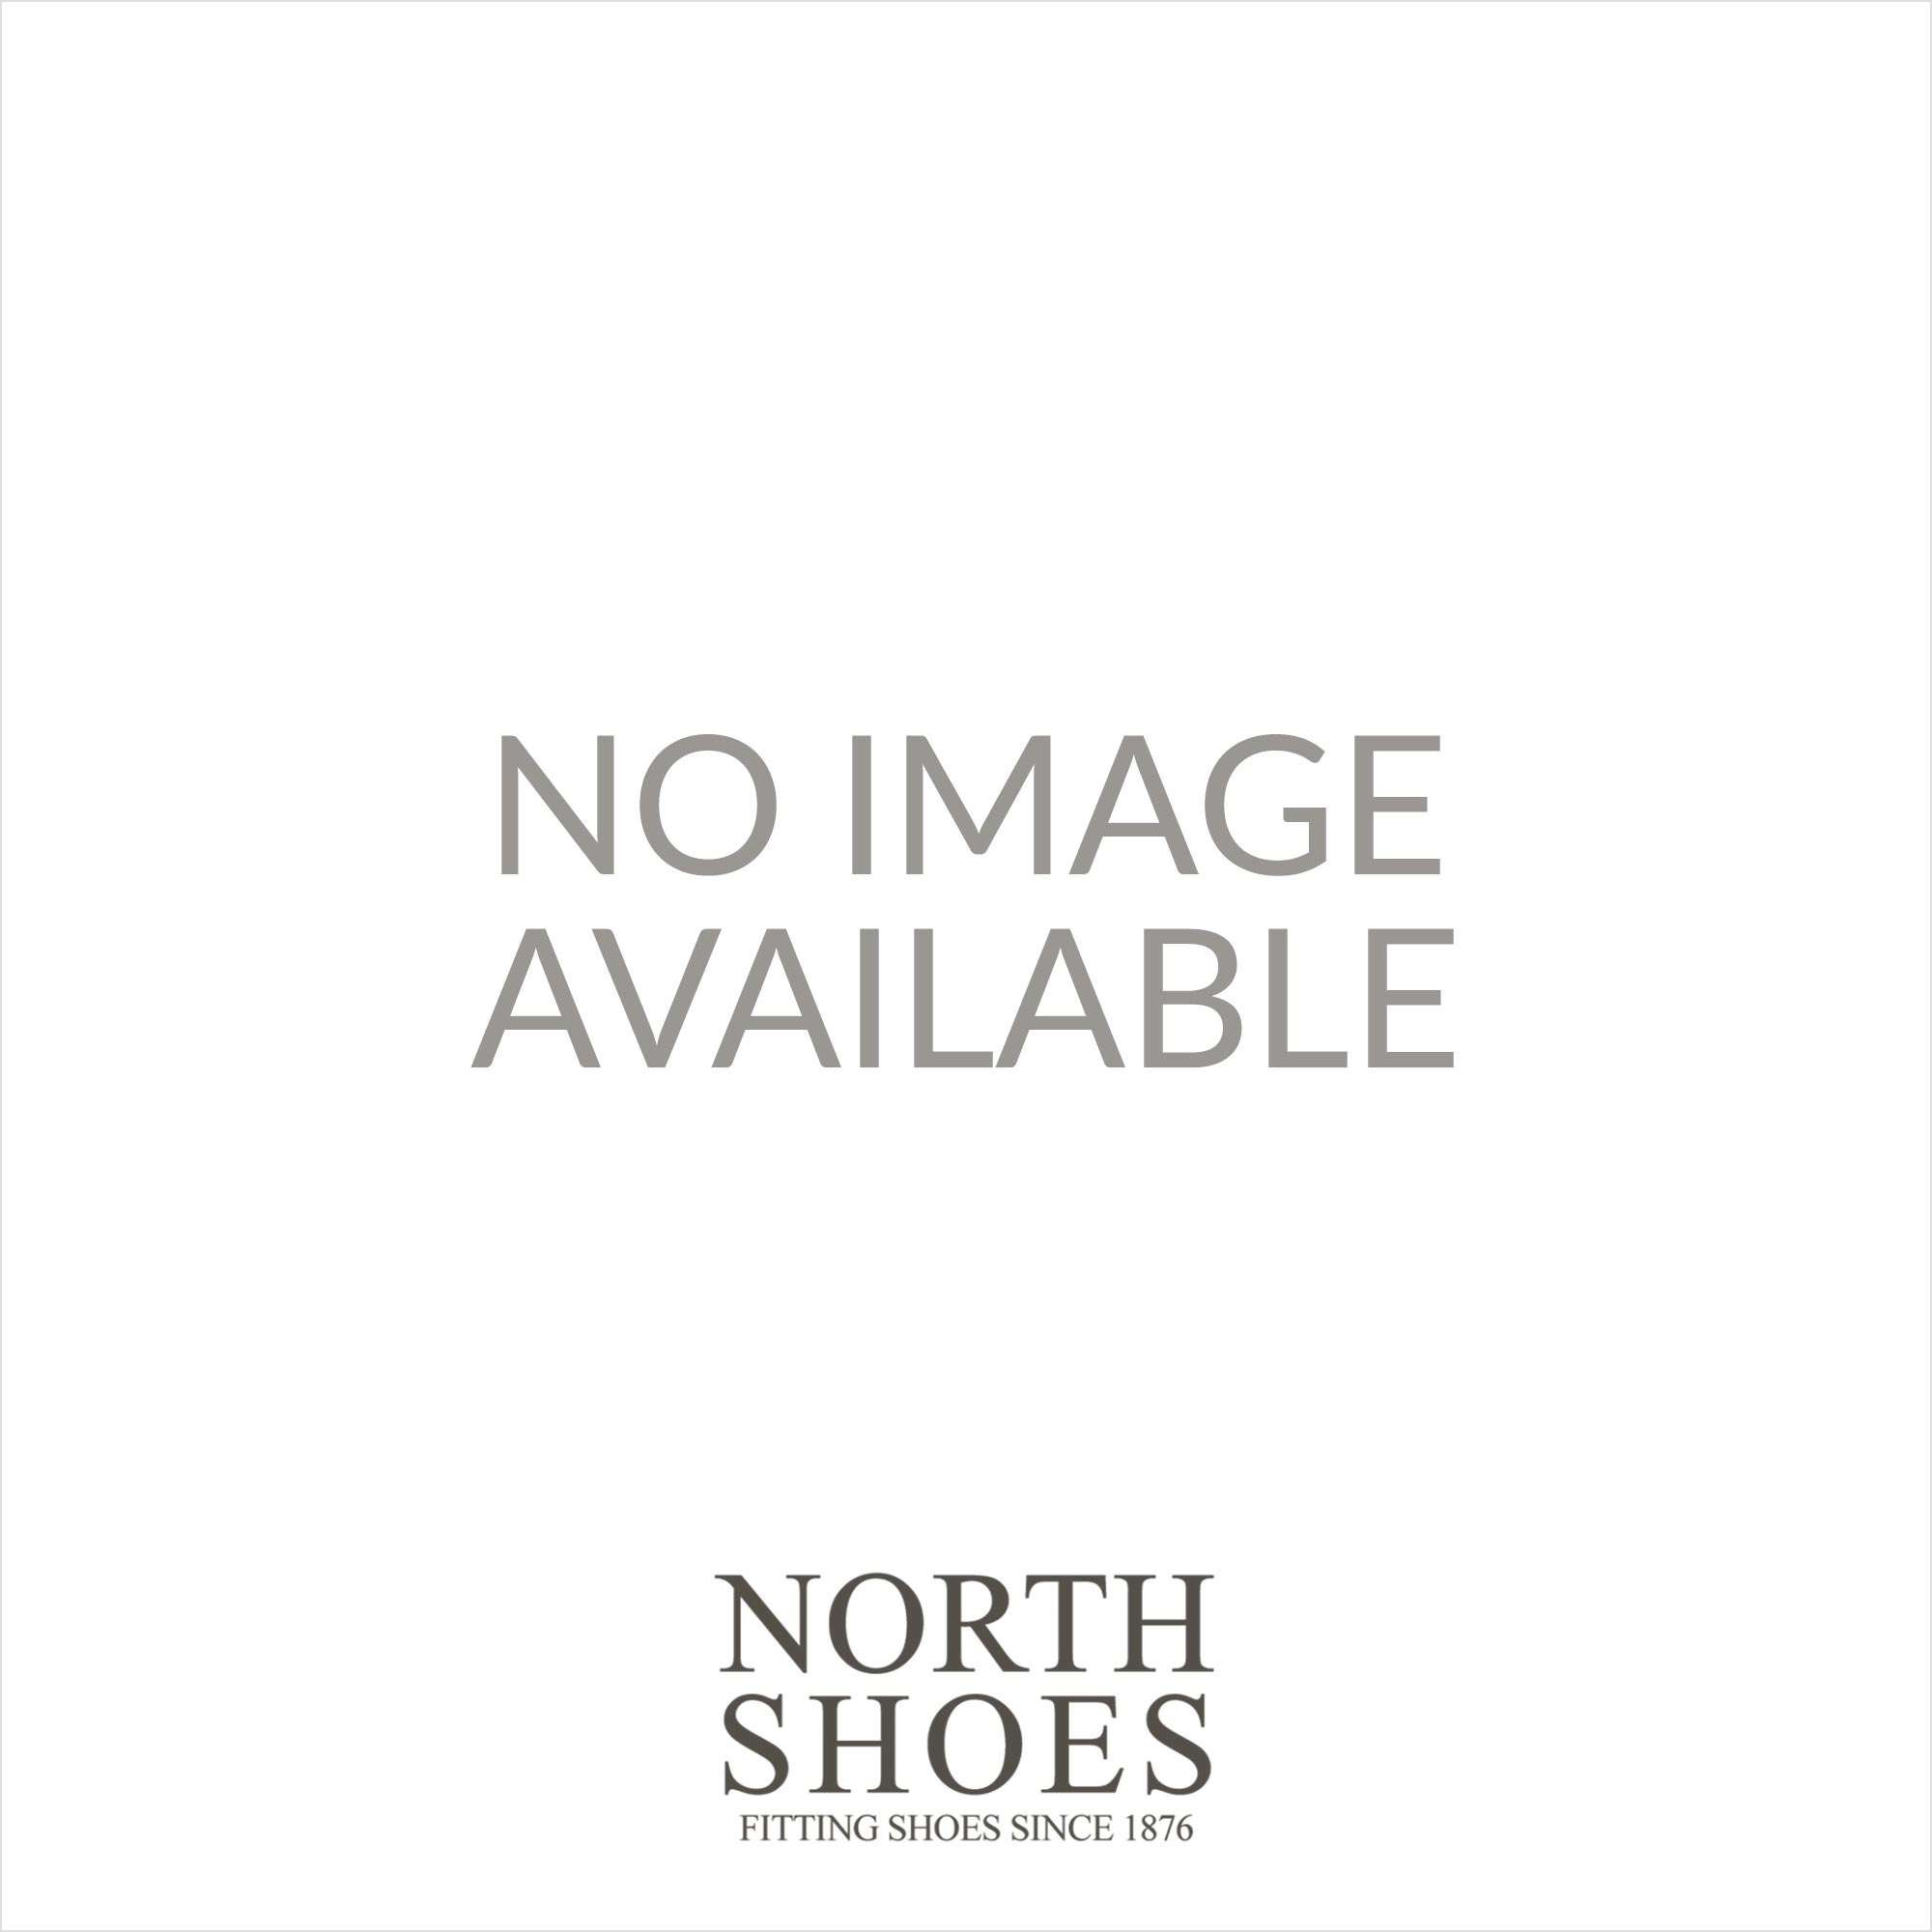 North Shoes